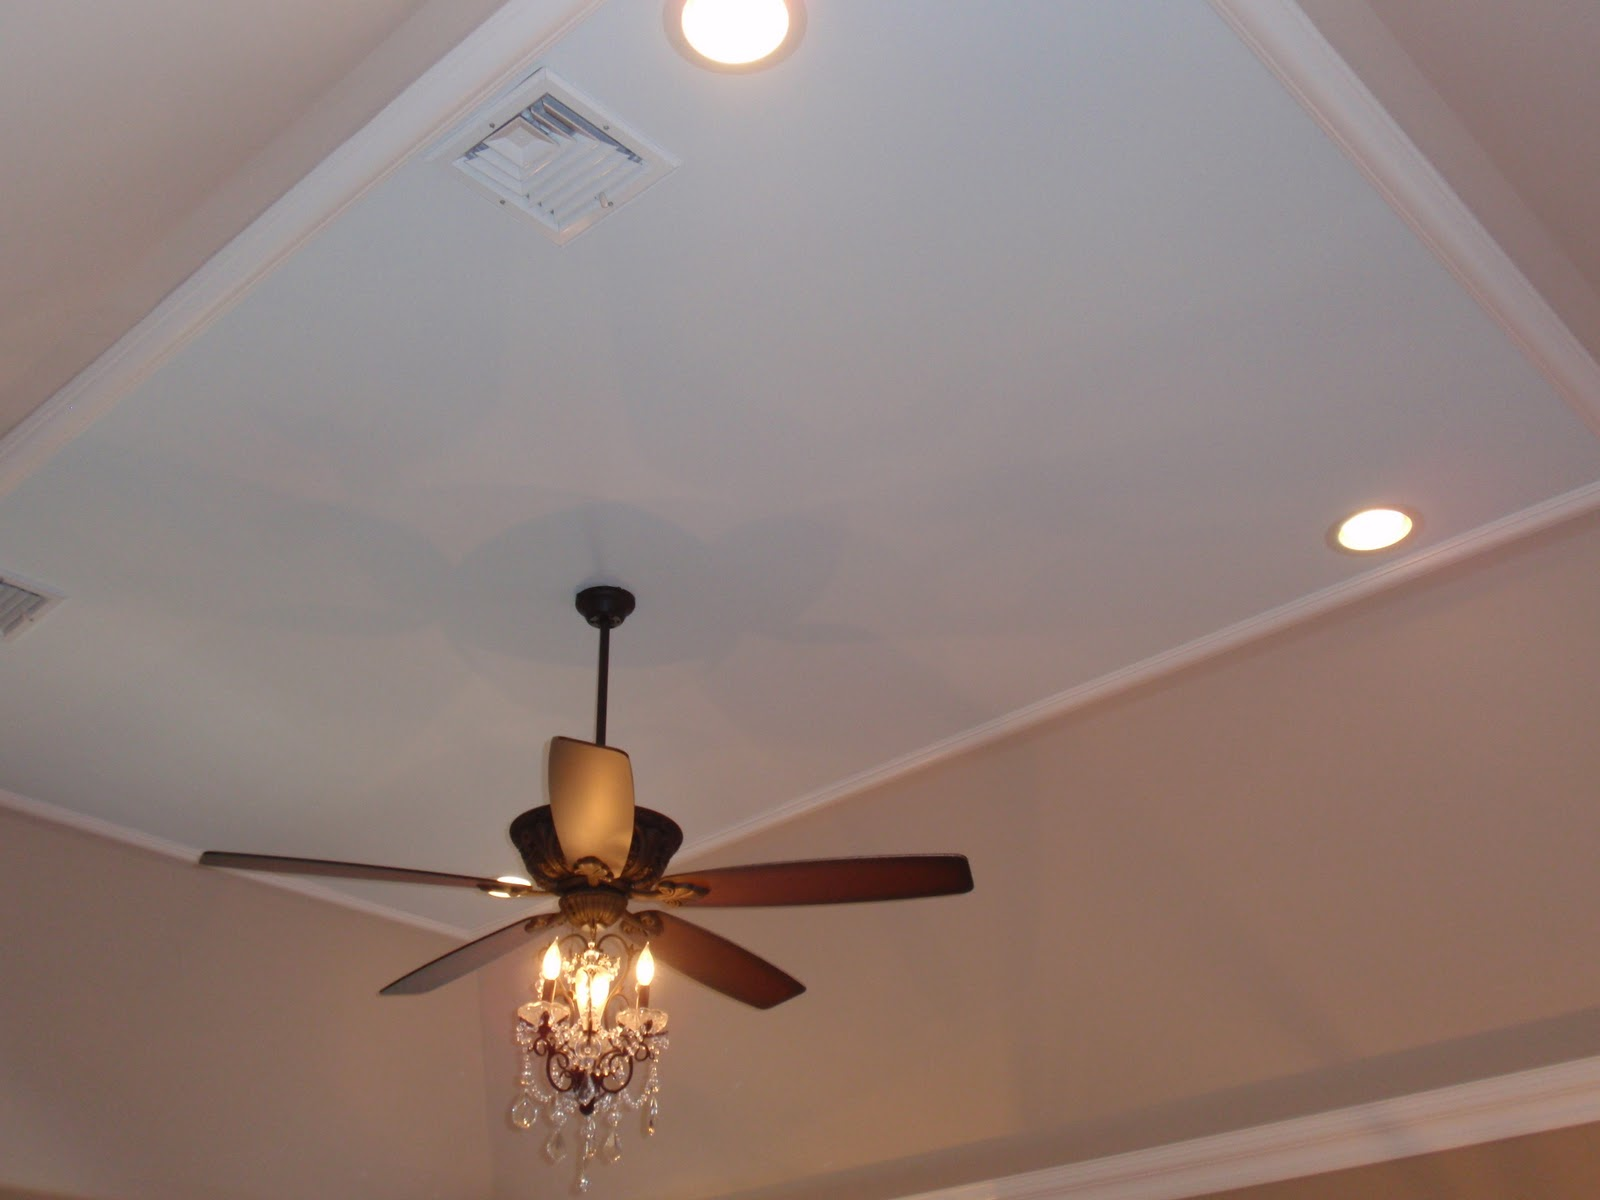 Ceiling chandelier fan lighting - Ceiling lights and chandeliers ...